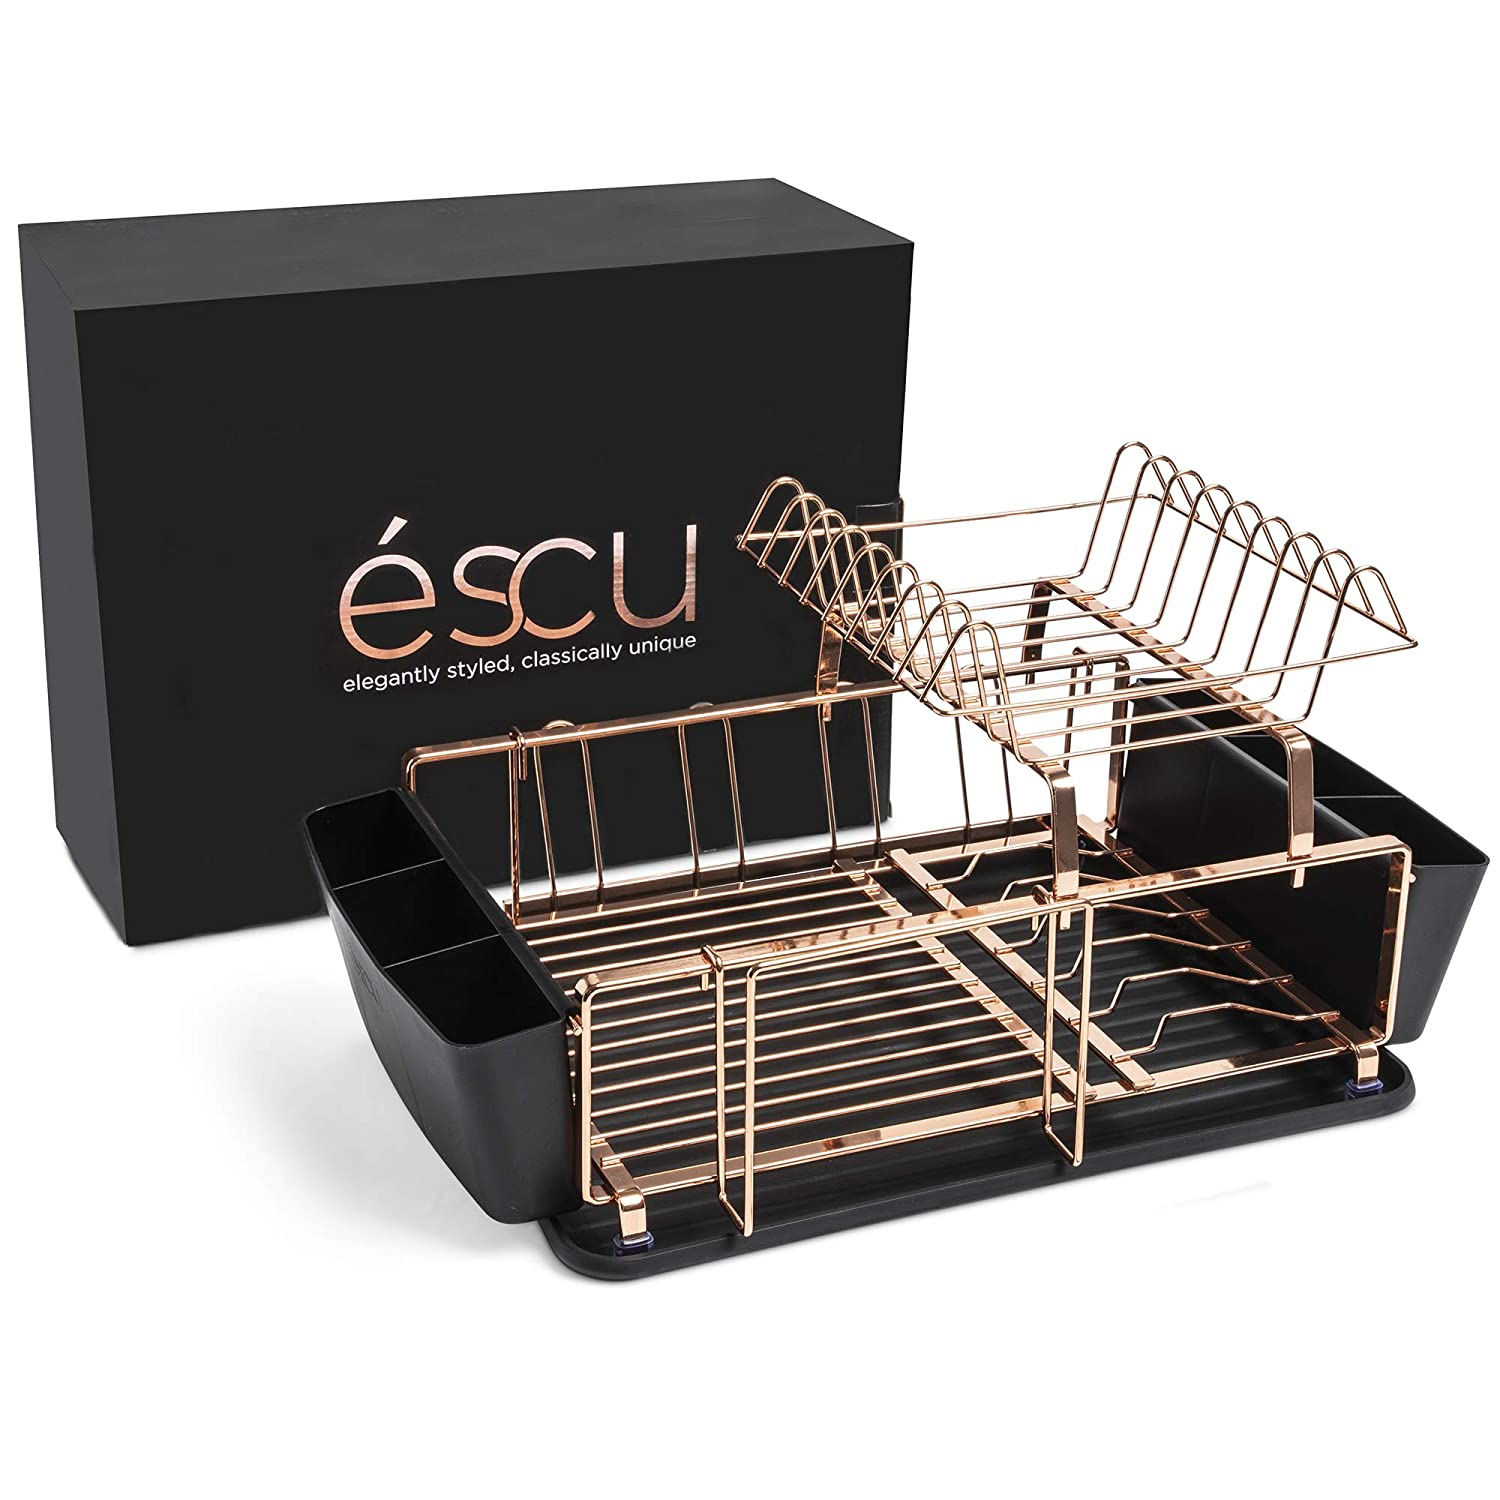 éscu dish Drying Rack​ for ​Kitchen Countertops and Sink, Adjustable 2-Tier Design​ -​ Copper Dish Holder​ and Drainboard Set - Drainer Drying Racks​ with ​Baskets, Drip Tray ​for ​Plates, silverware